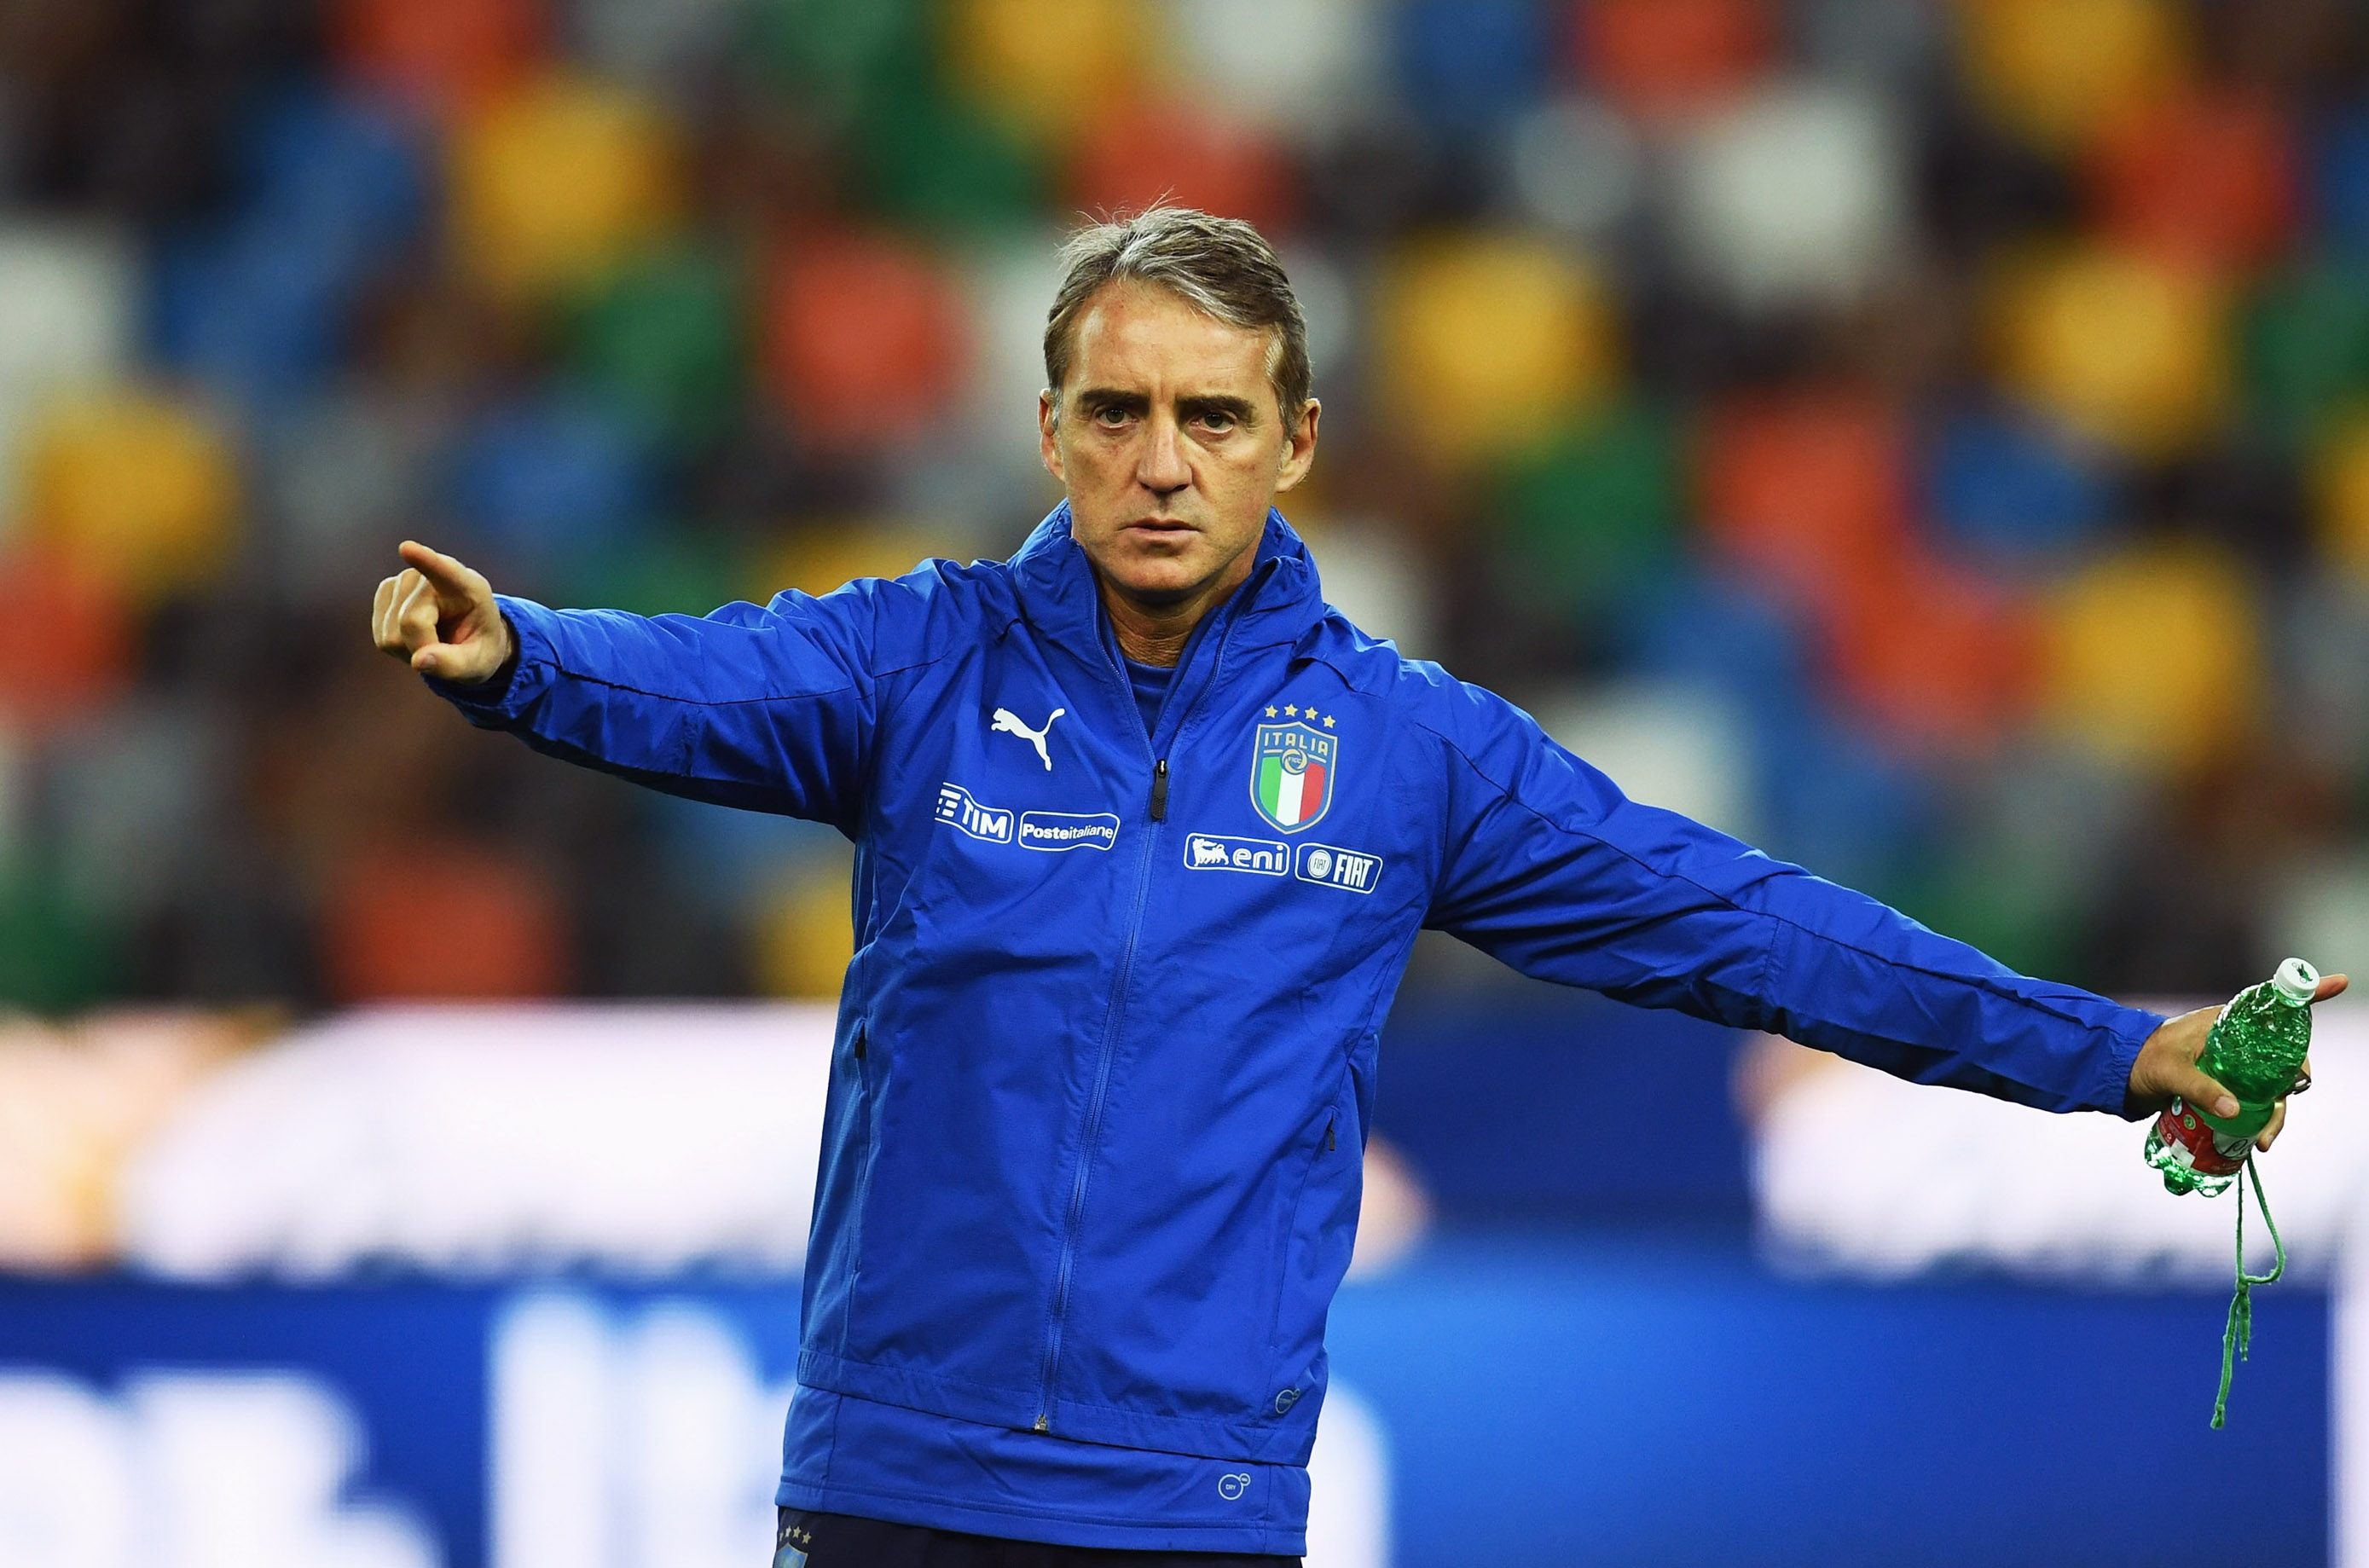 UDINE, ITALY - MARCH 22:  Head coach Italy Roberto Mancini reacts during a training session at Stadio Friuli-Dacia Arena on March 22, 2019 in Udine, Italy.  (Photo by Claudio Villa/Getty Images)